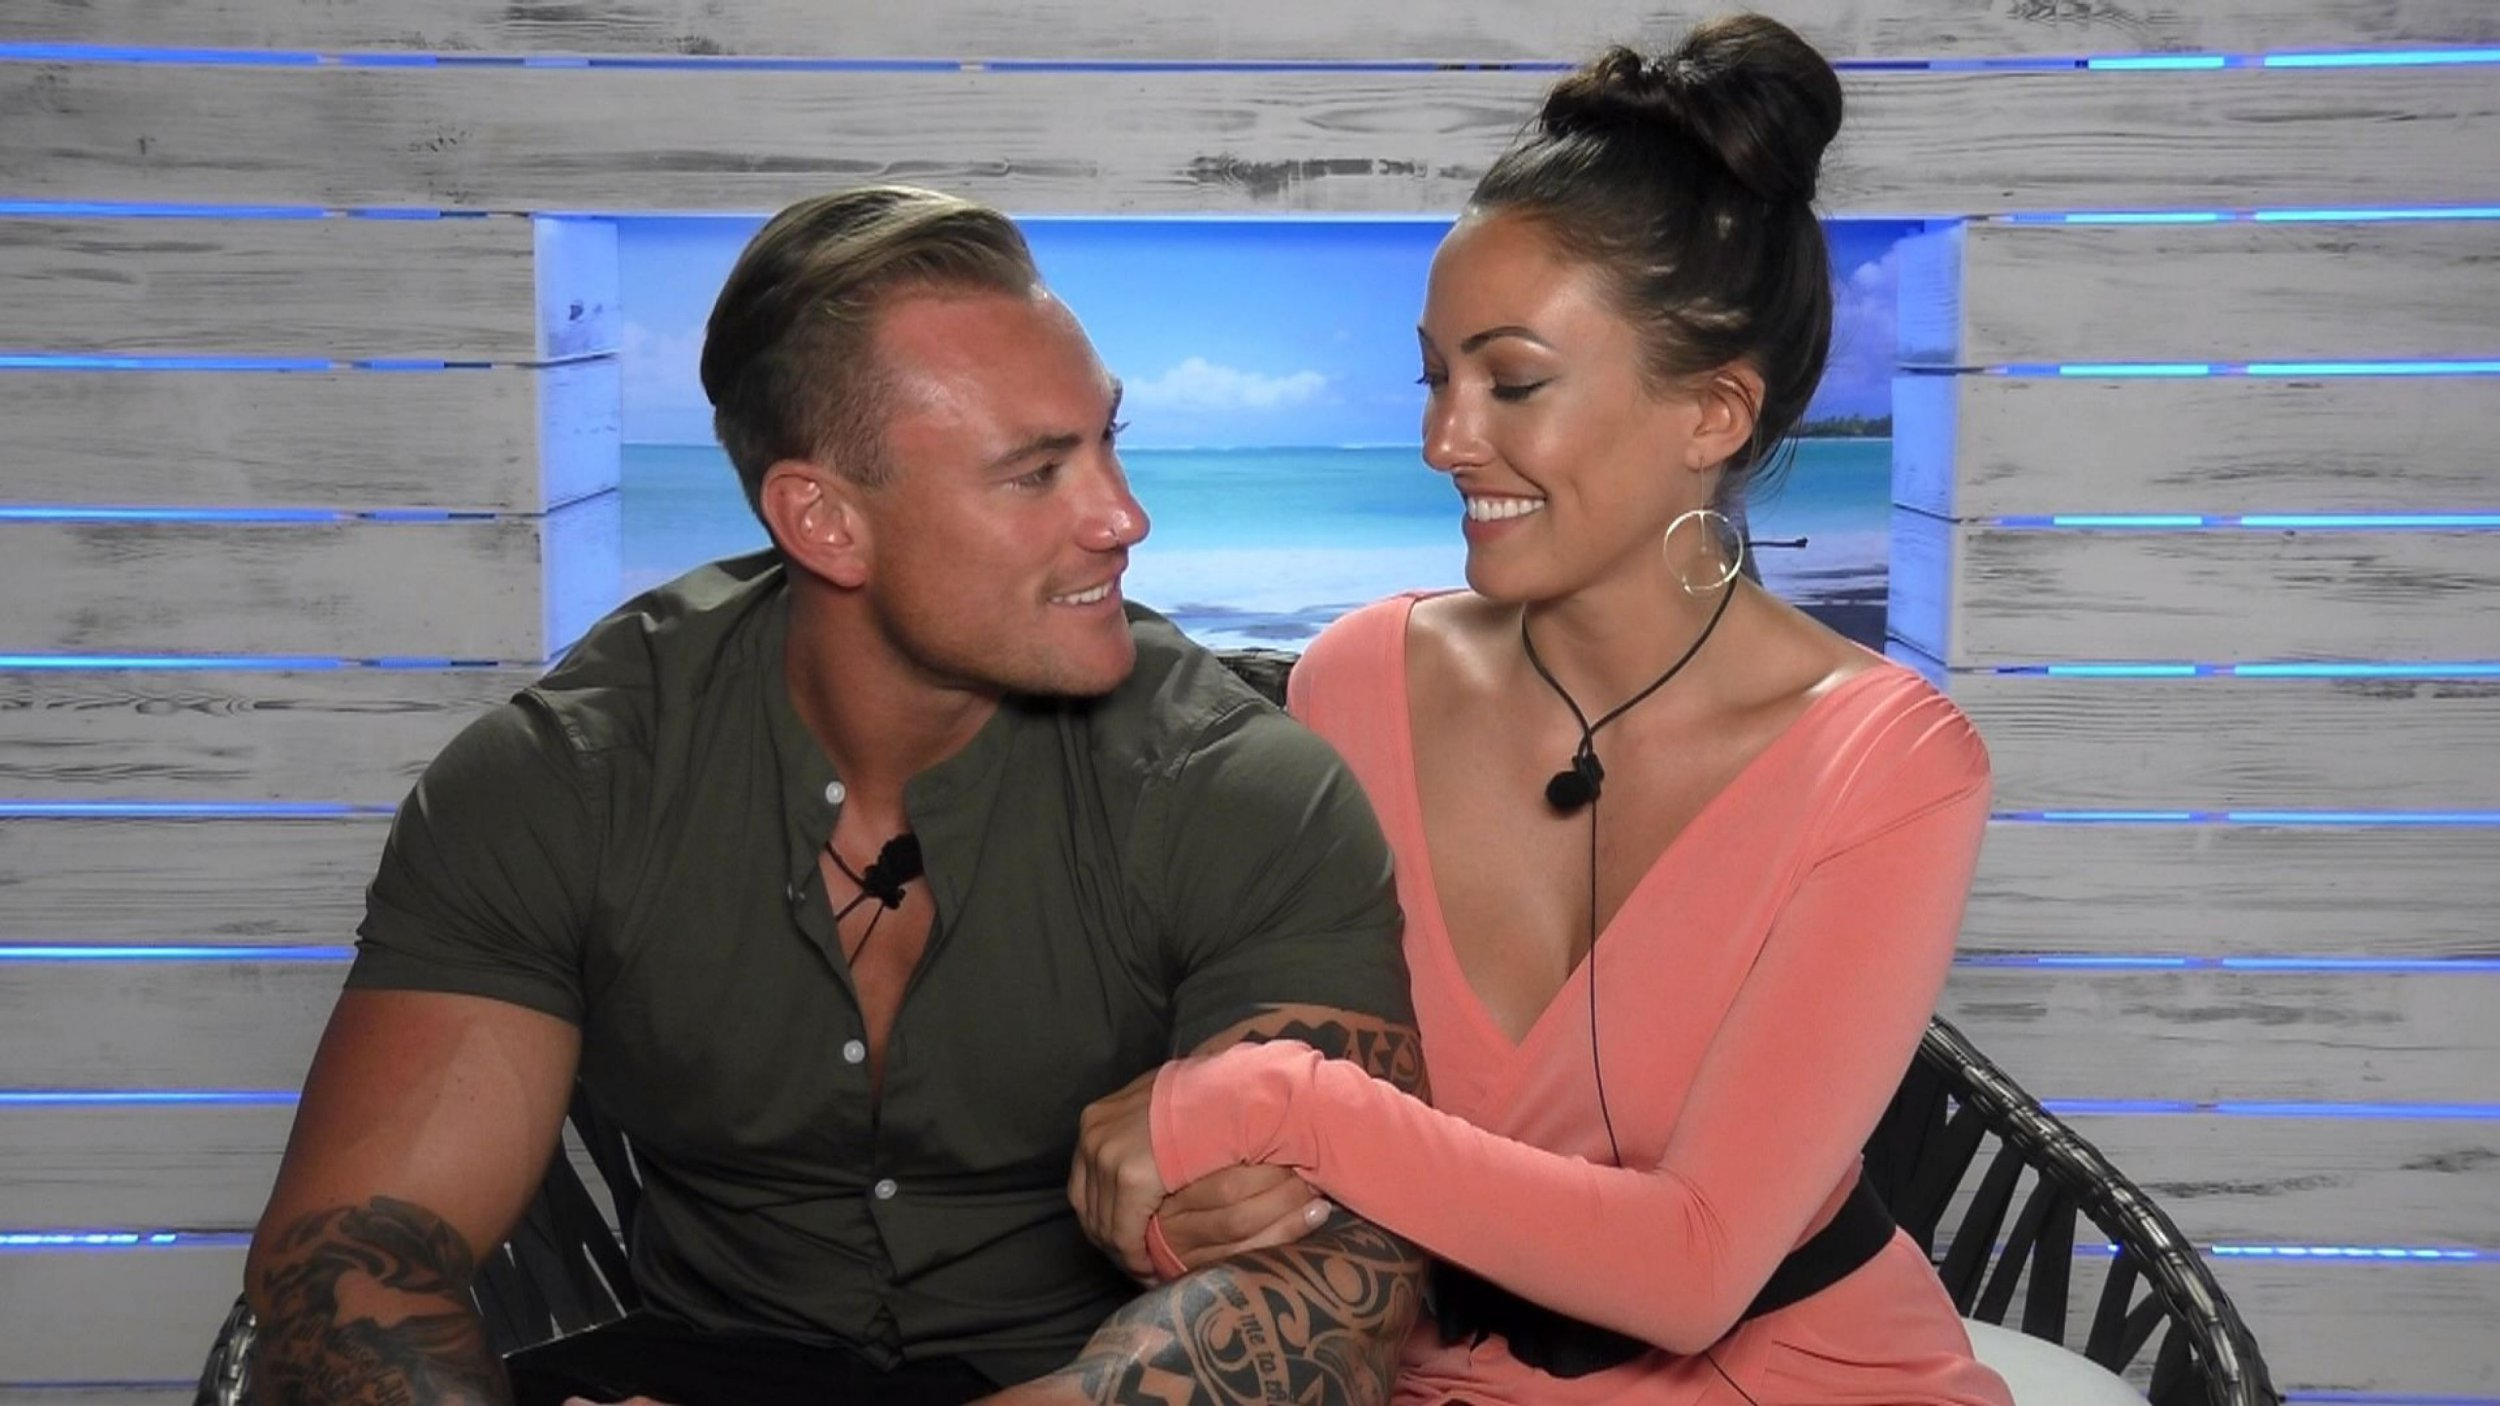 Editorial Use Only. No merchandising Mandatory Credit: Photo by ITV/REX/Shutterstock (5768897q) Tom Powell and Sophie Gradon back together 'Love Island', Series 2 TV show, Episode 32, Mallorca, Spain - 2016